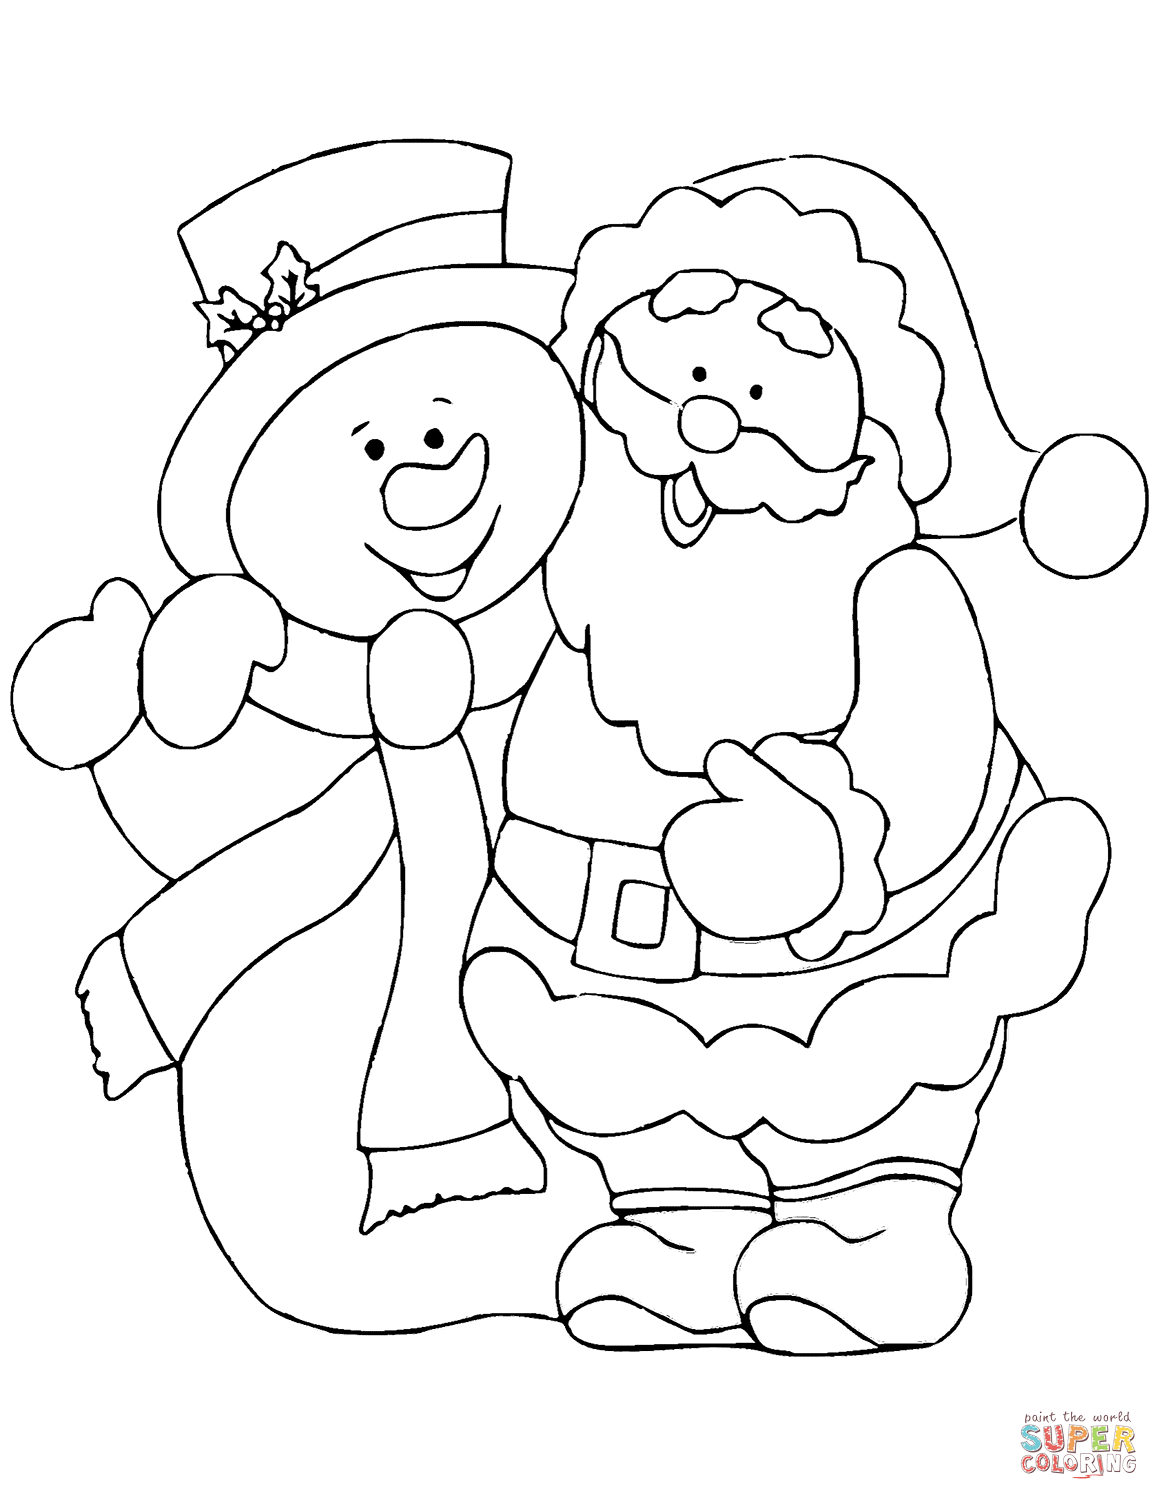 Santa Claus Head Coloring Pages With Snowman Page Free Printable